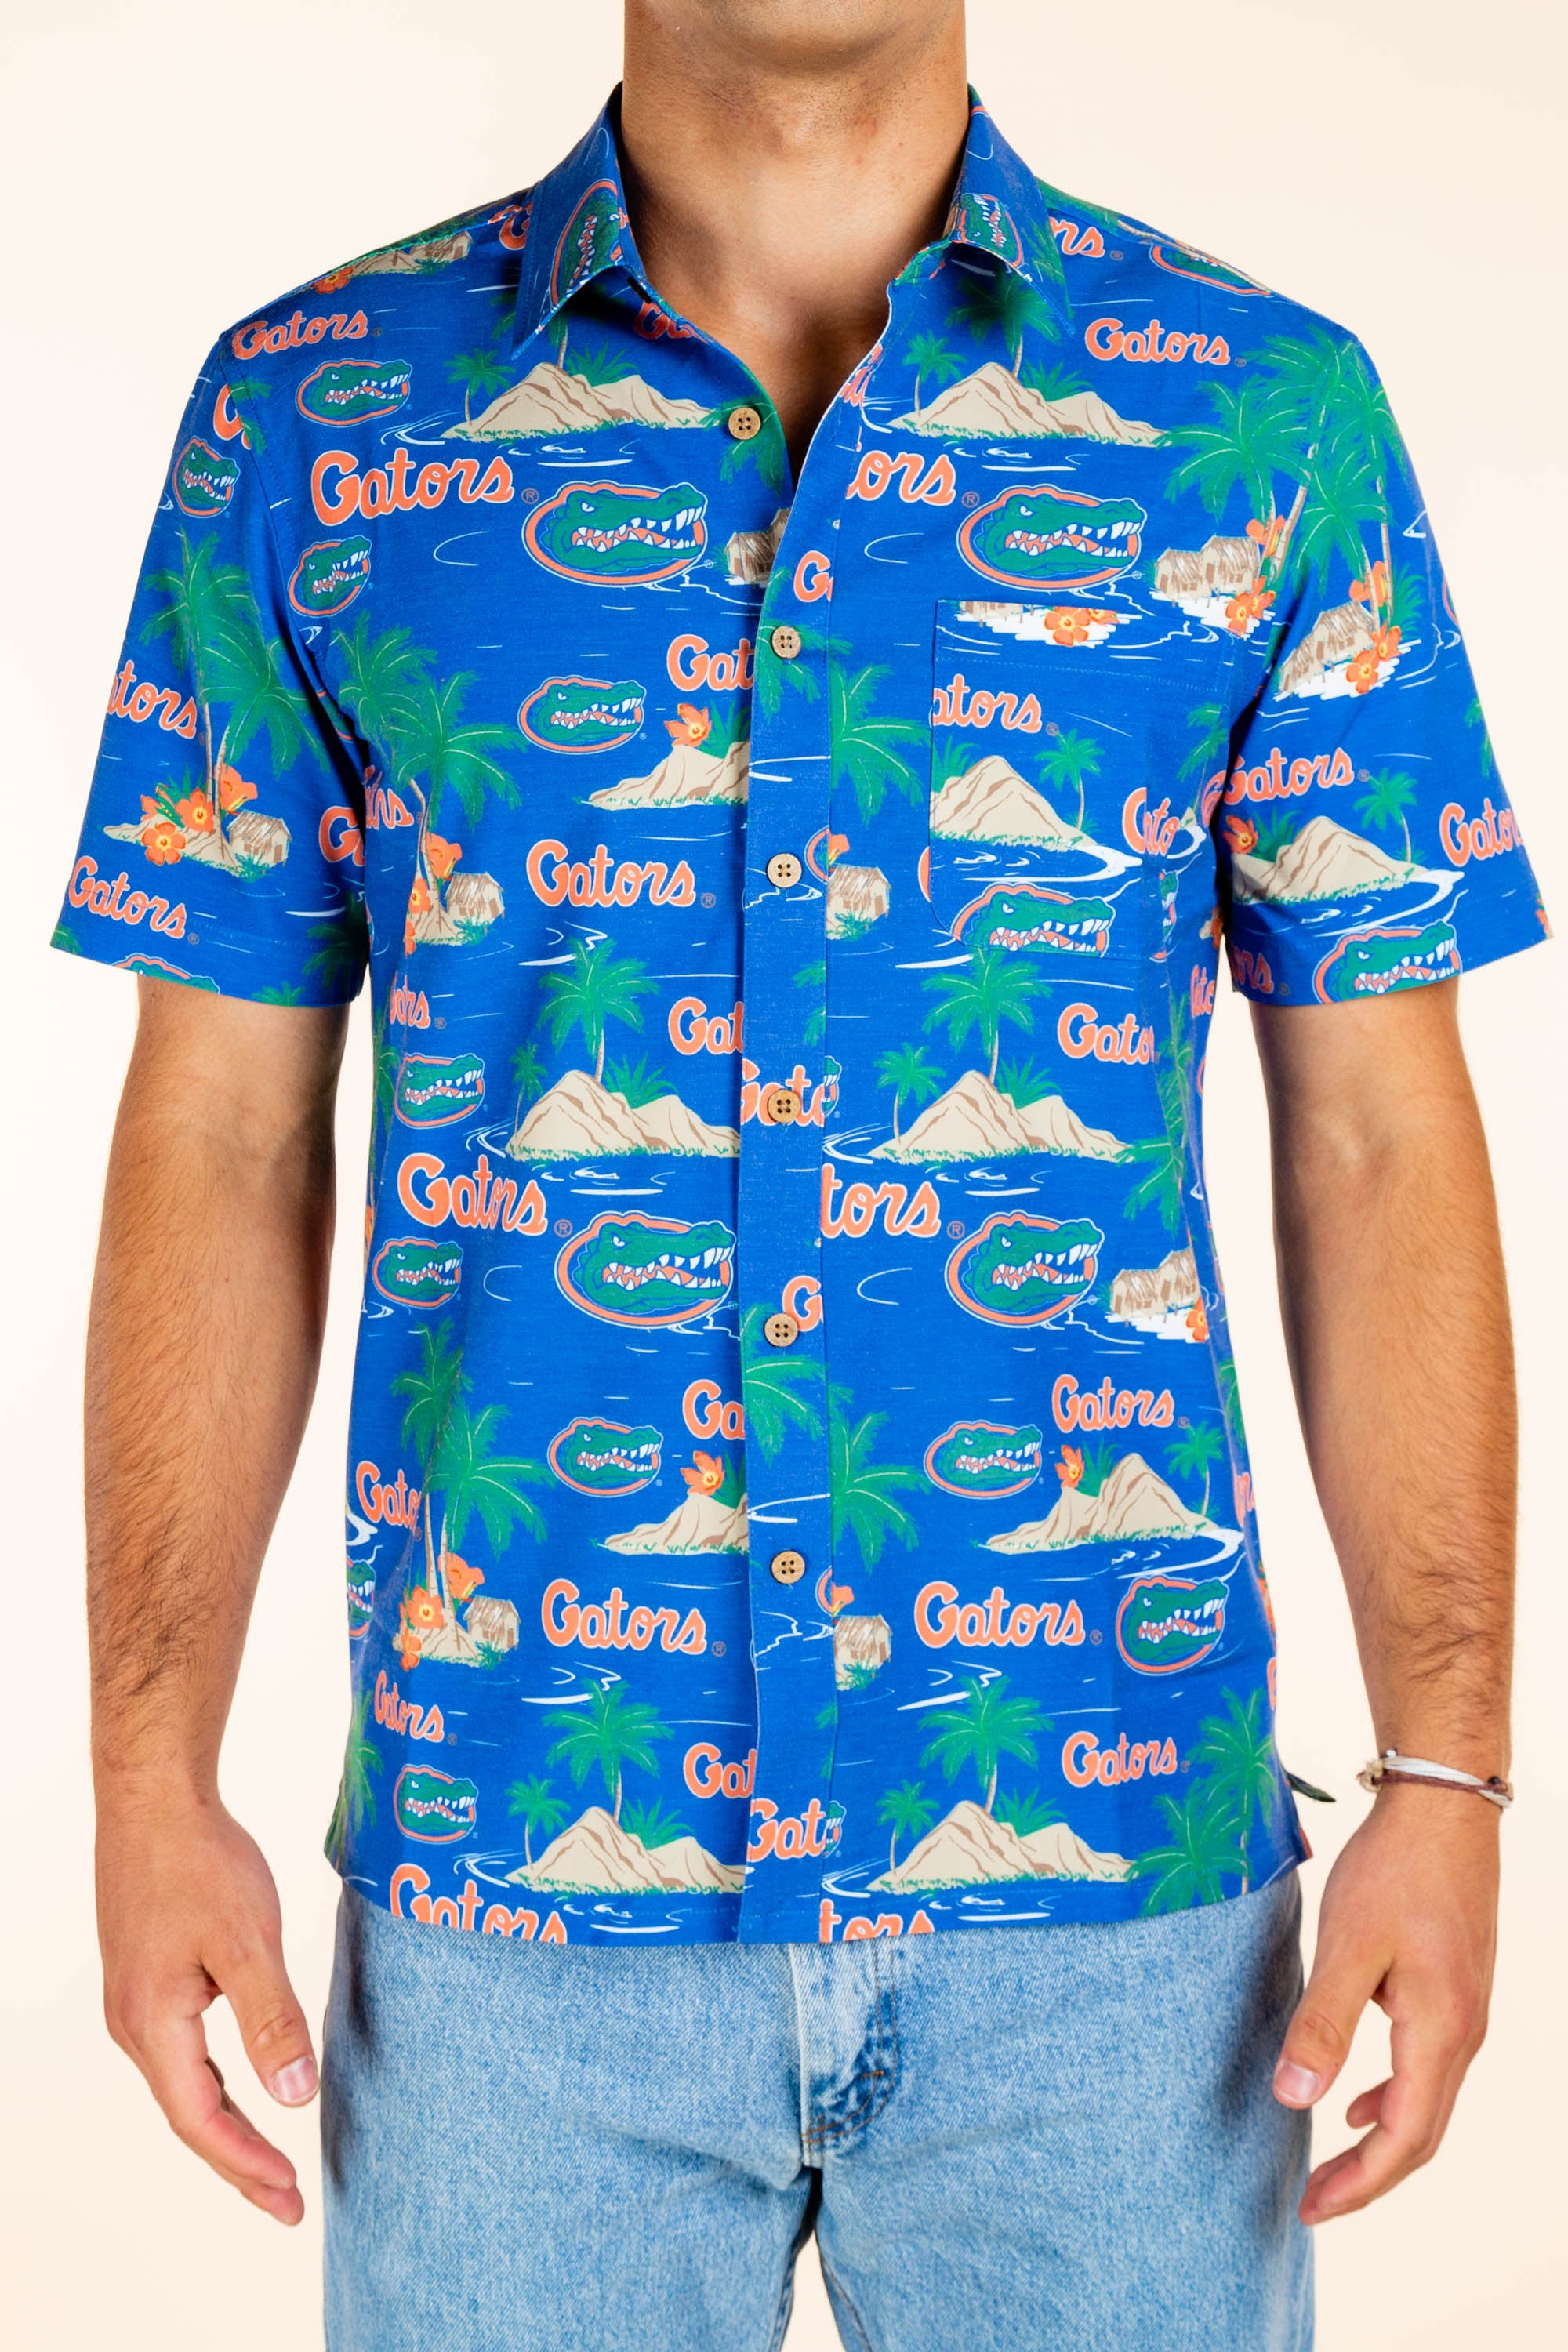 University of Florida Game Day Party Shirt